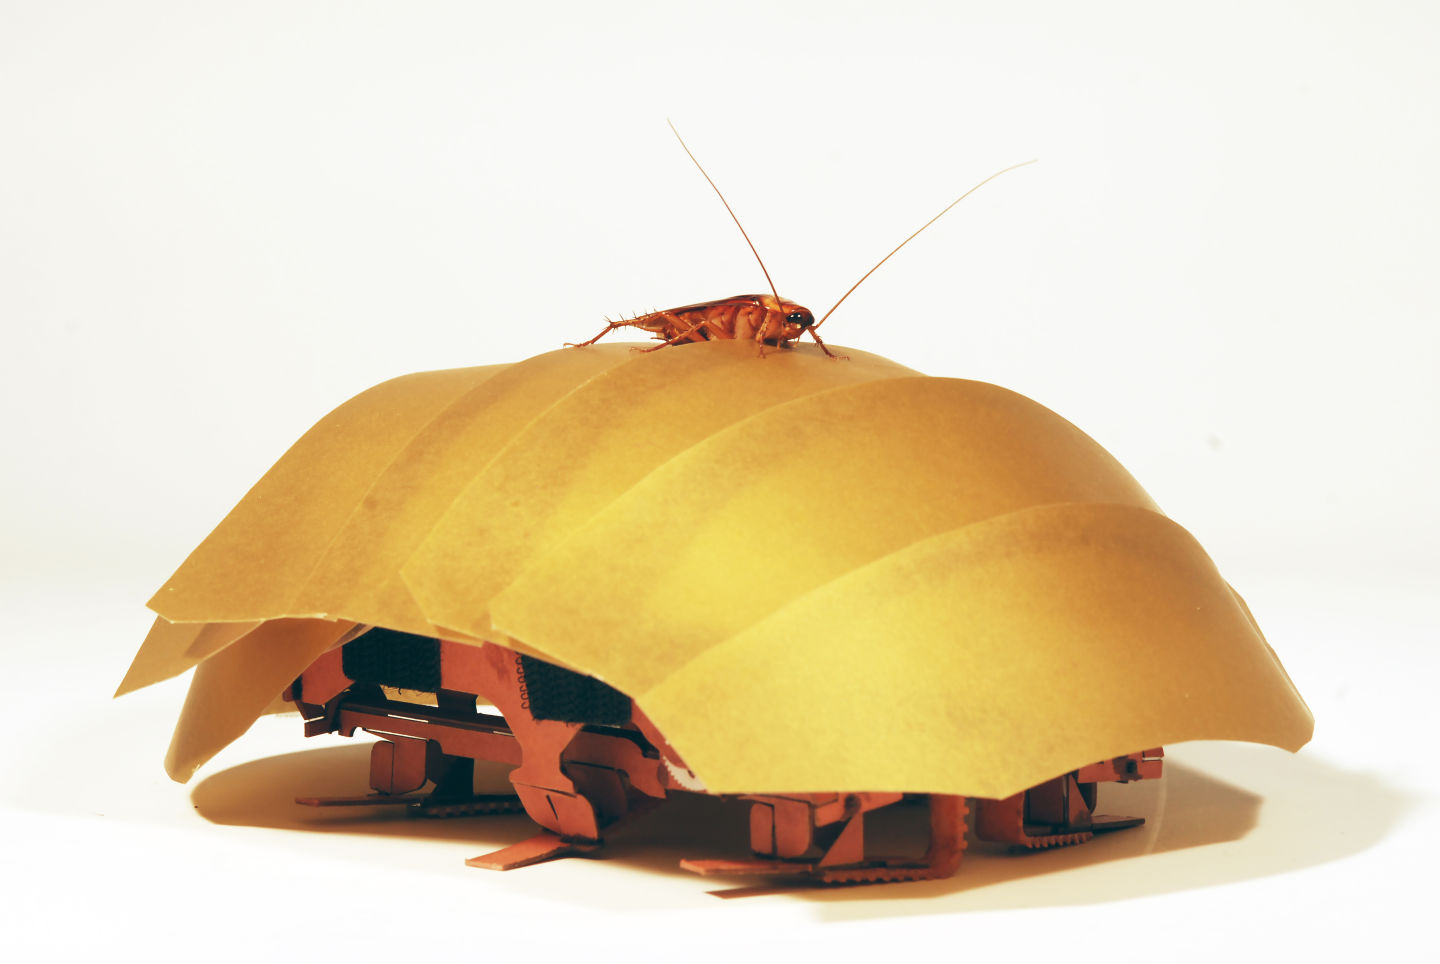 Cockroach Robot Could Come to Your Rescue